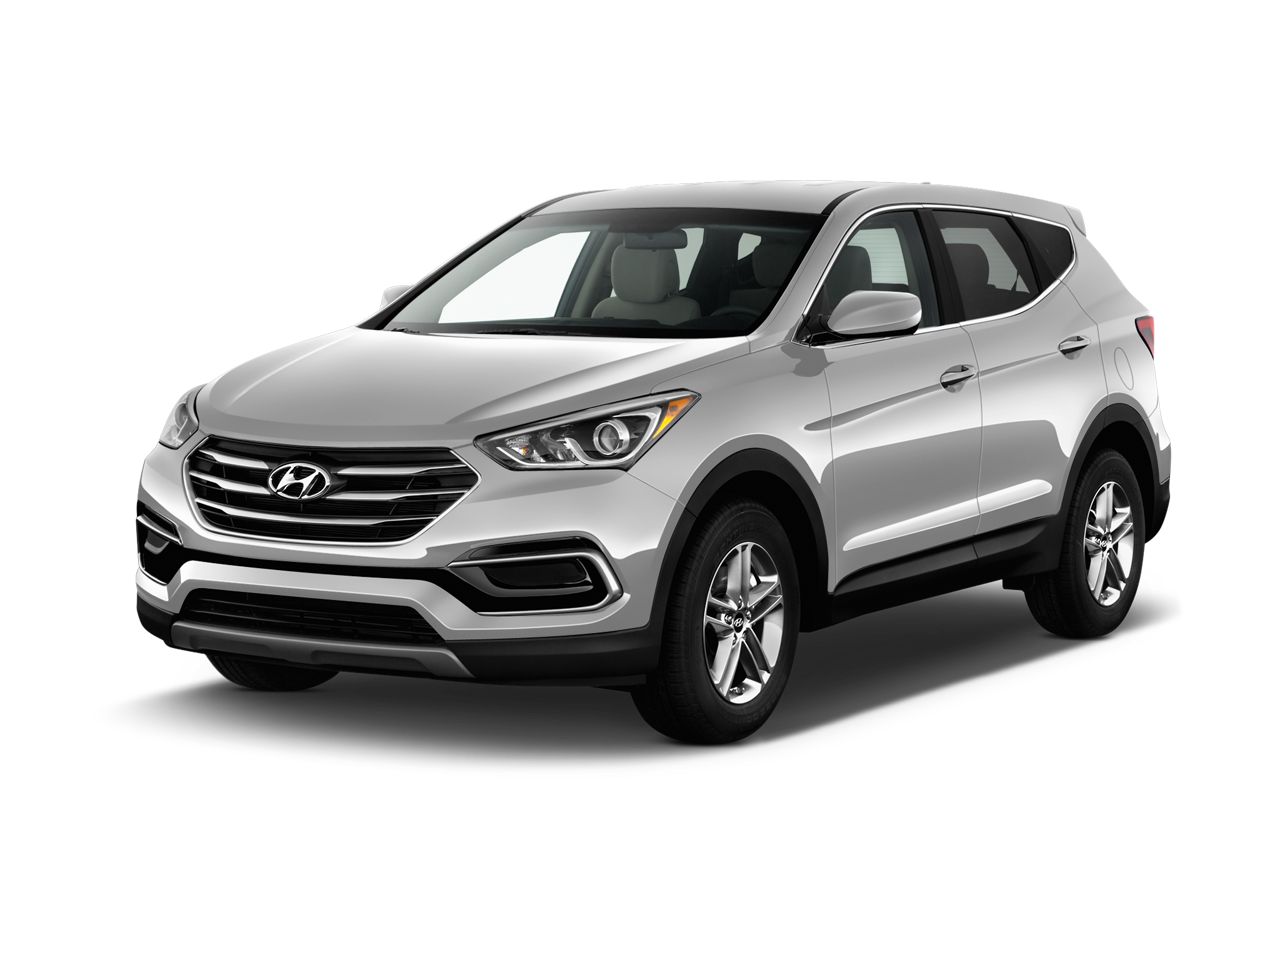 new 2017 hyundai santa fe sport 2 0l turbo near framingham ma herb connolly auto group. Black Bedroom Furniture Sets. Home Design Ideas